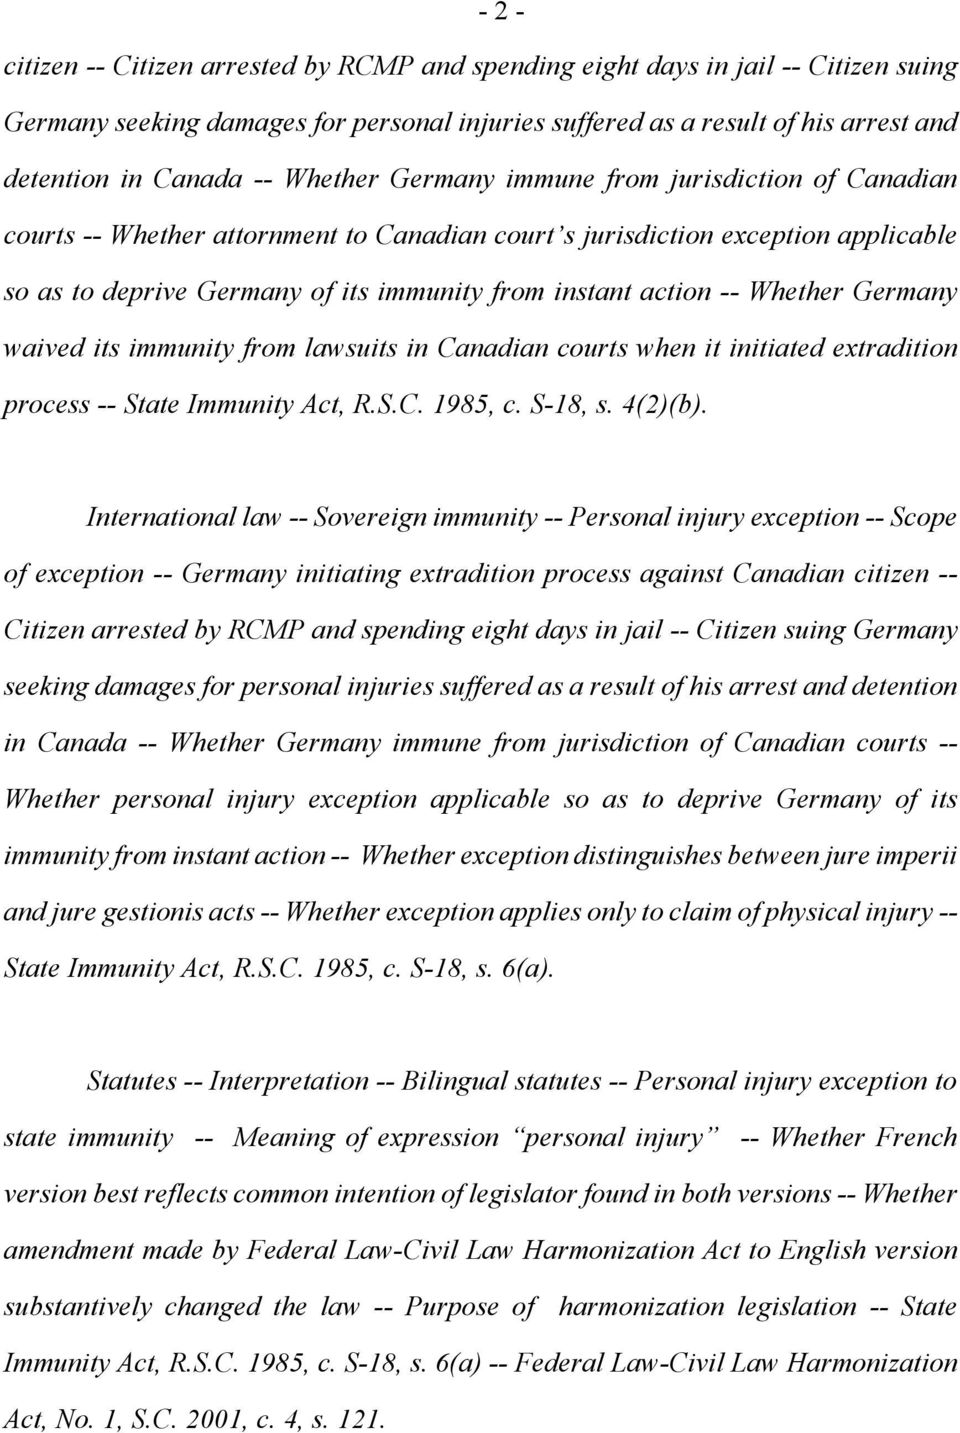 Whether Germany waived its immunity from lawsuits in Canadian courts when it initiated extradition process -- State Immunity Act, R.S.C. 1985, c. S-18, s. 4(2)(b).